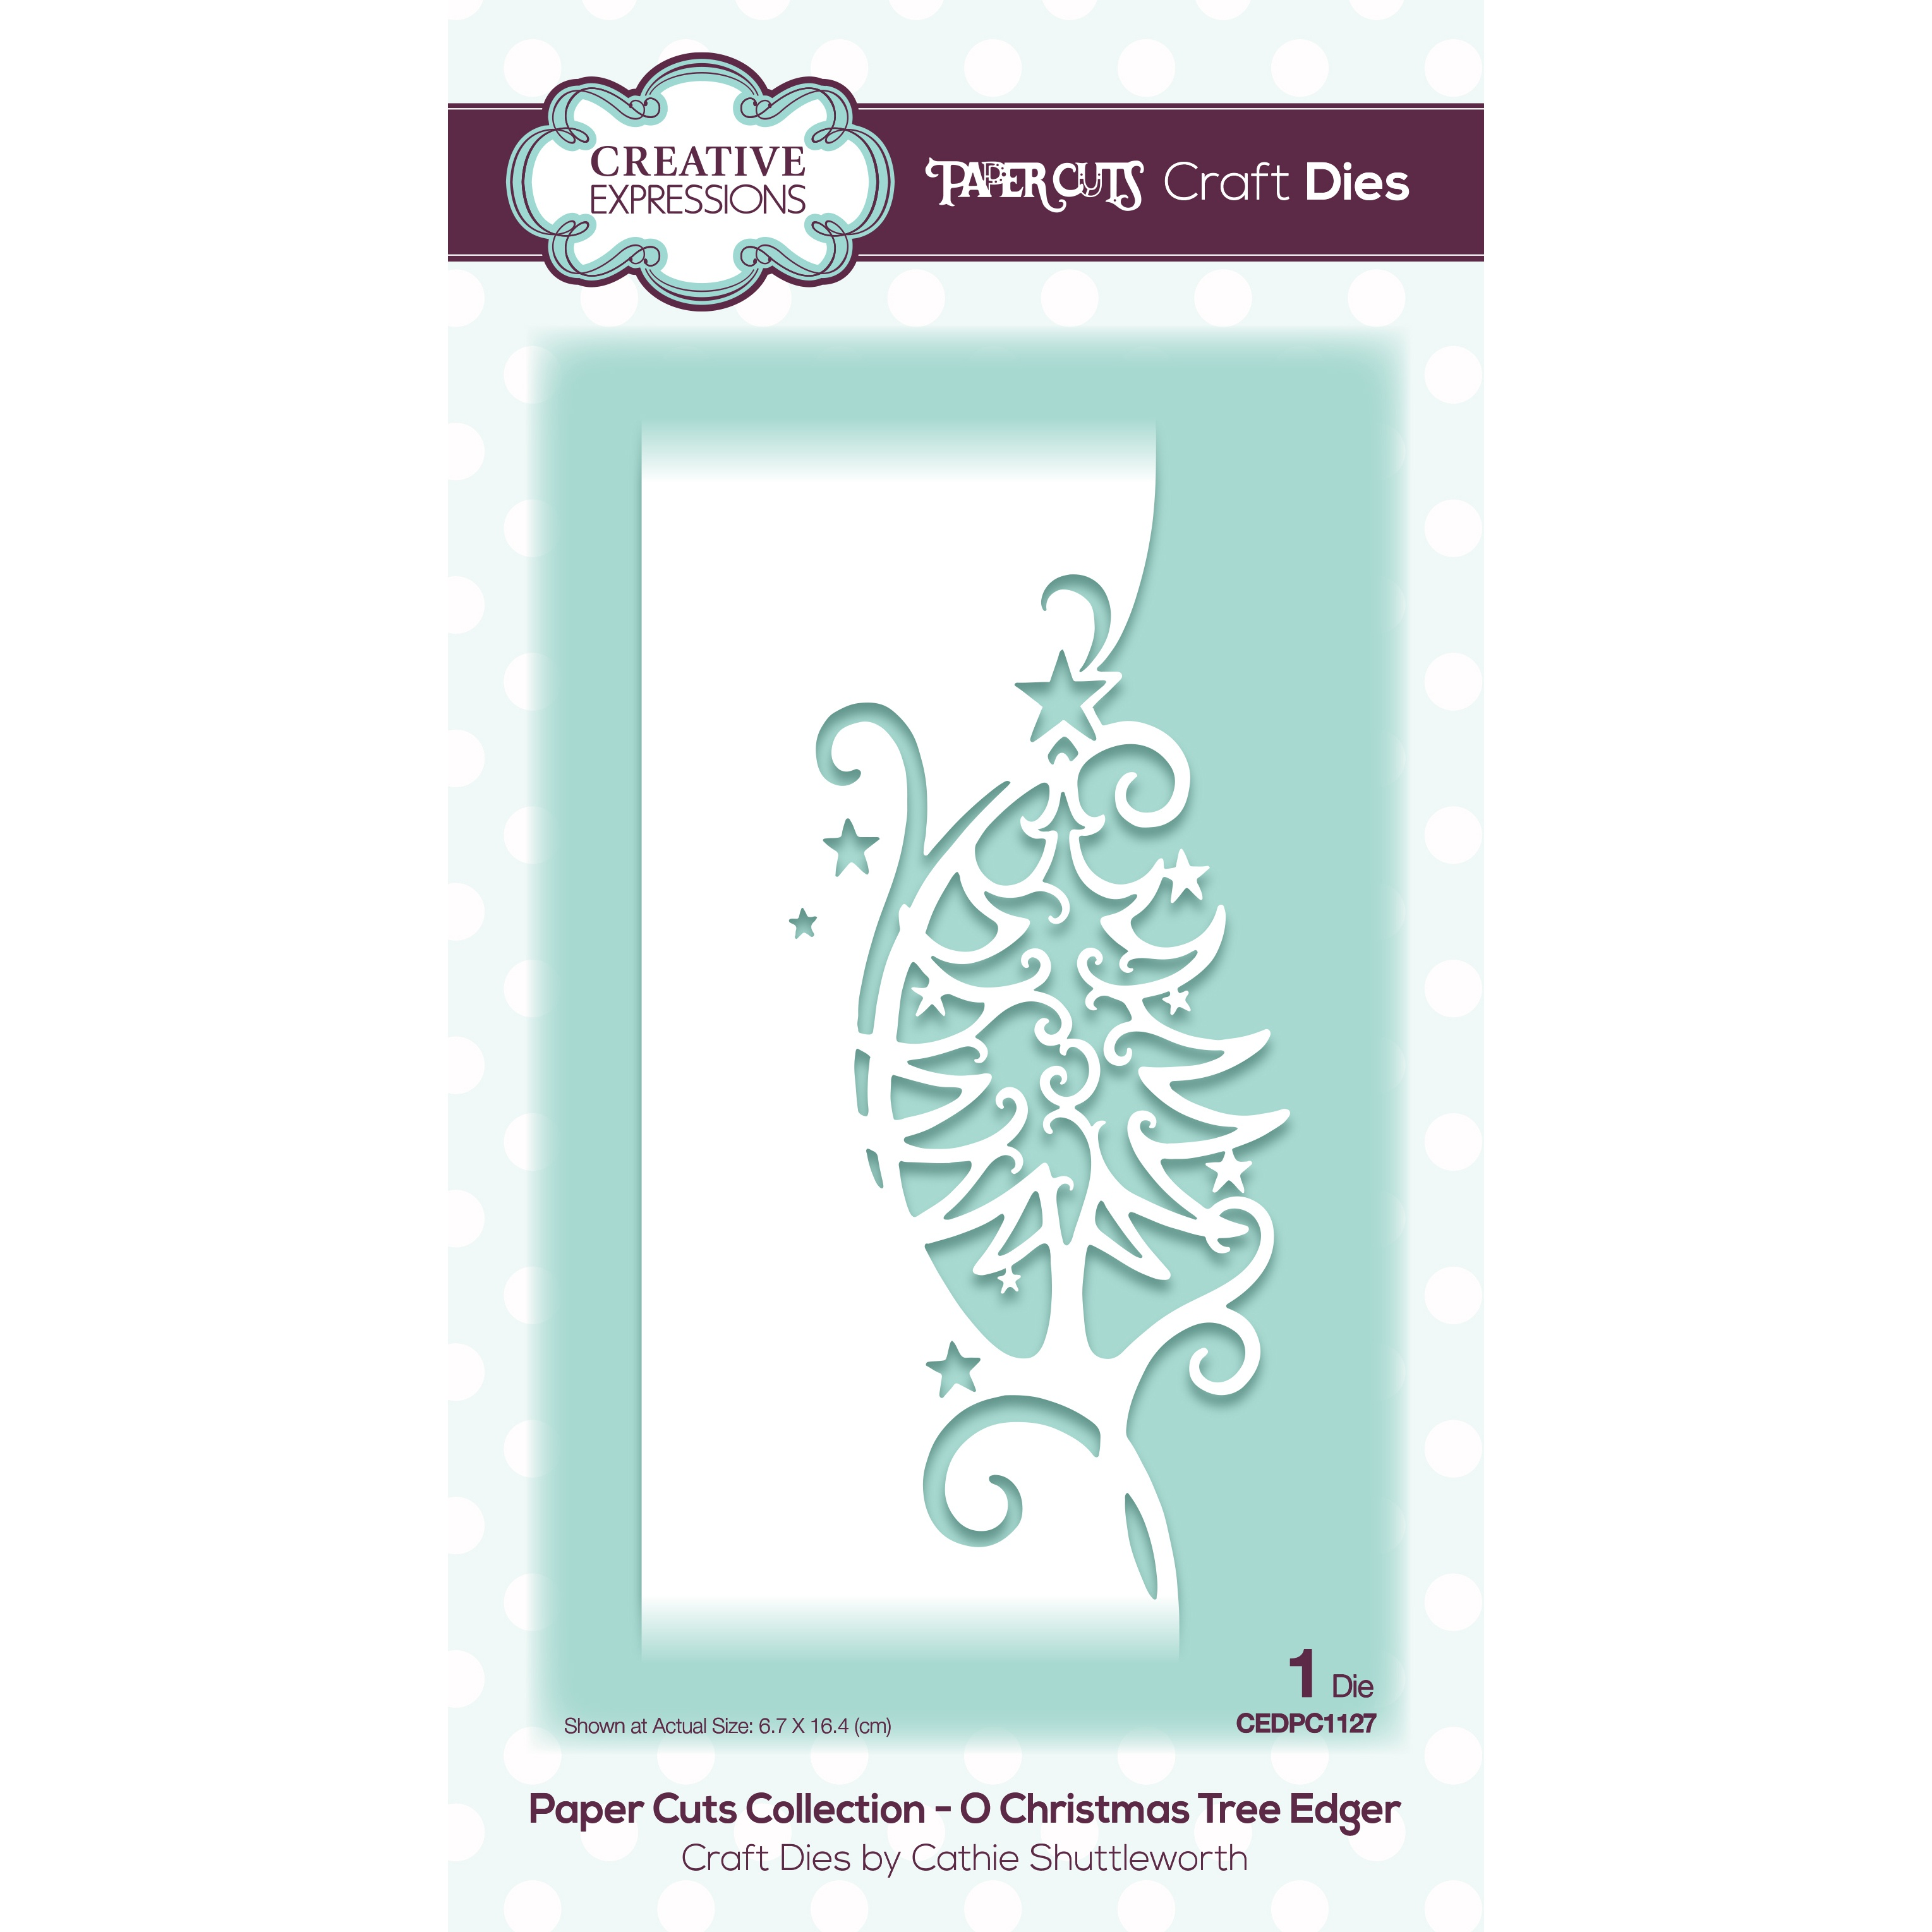 Creative Expressions Paper Cuts Edger Craft Dies-O Christmas Tree